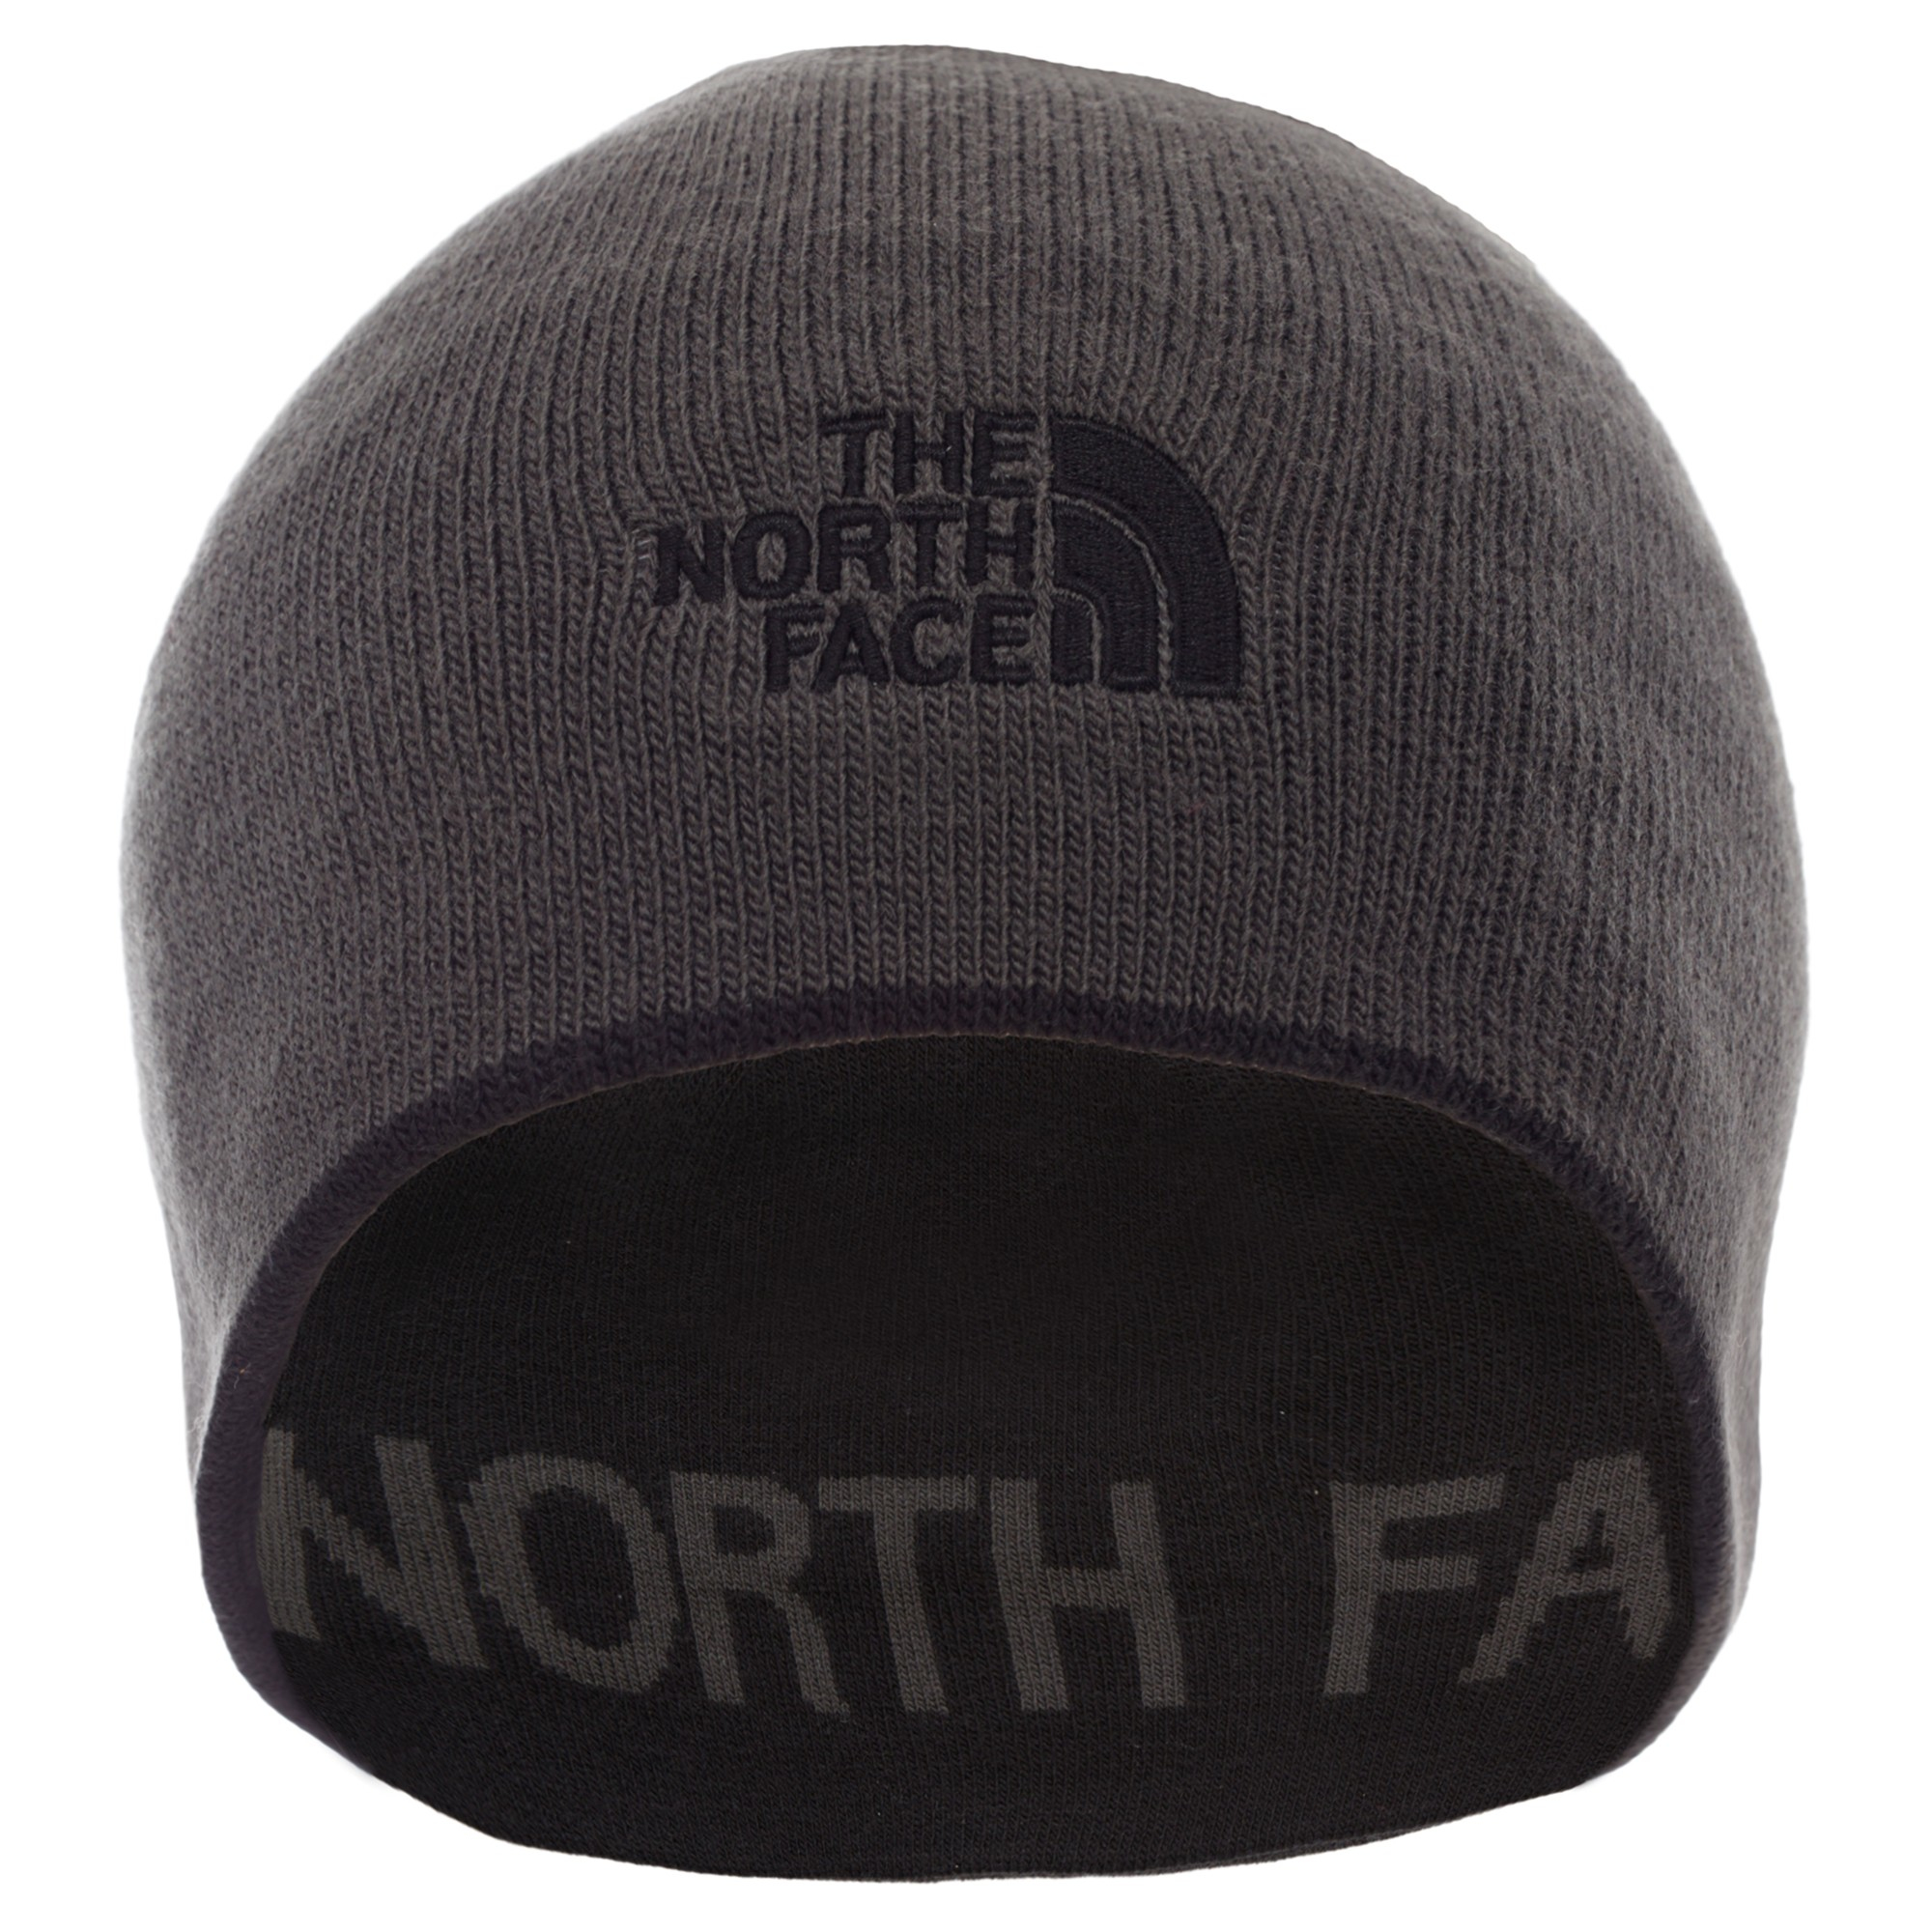 The North Face Reversible Banner Beanie in Gray for Men - Lyst 5d1b856697e